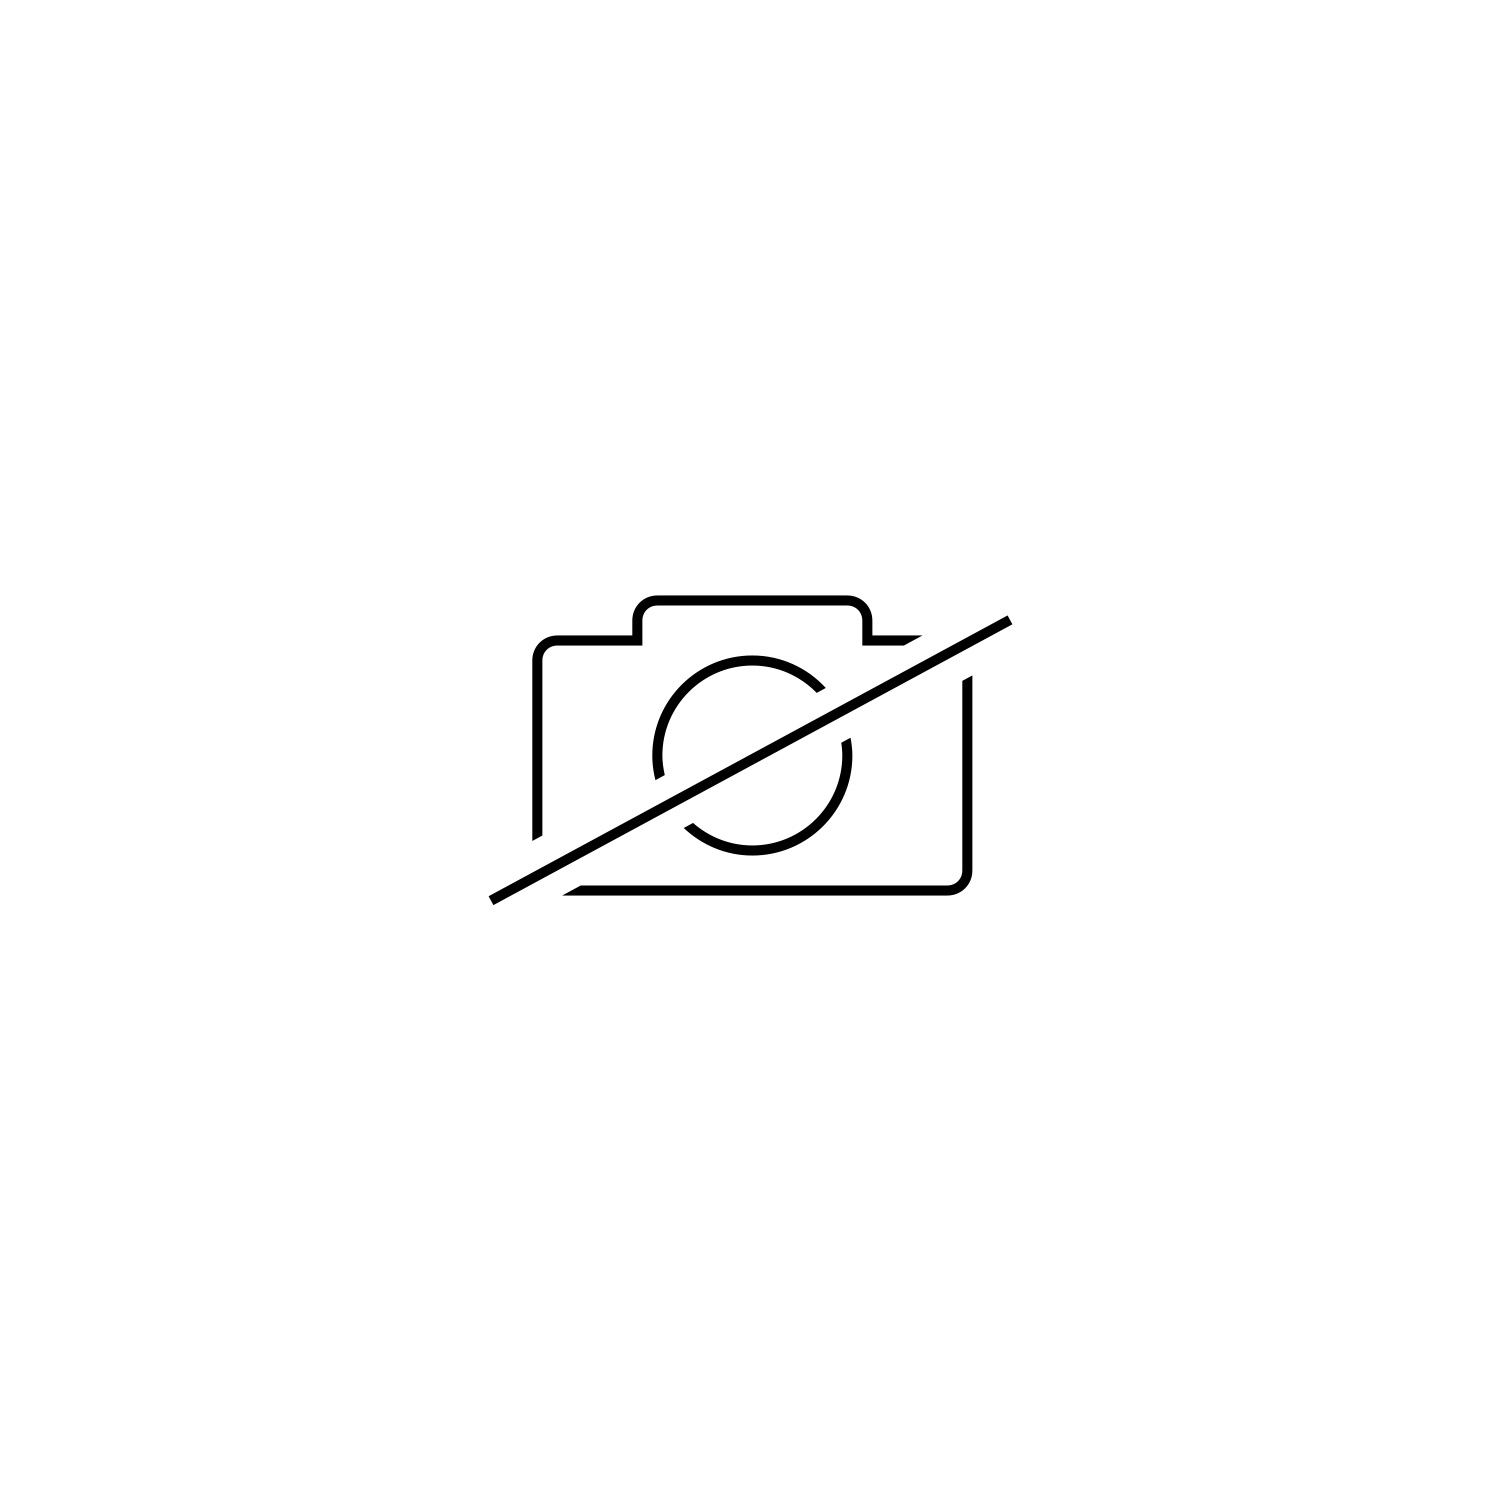 quattro Umbrella, black, big